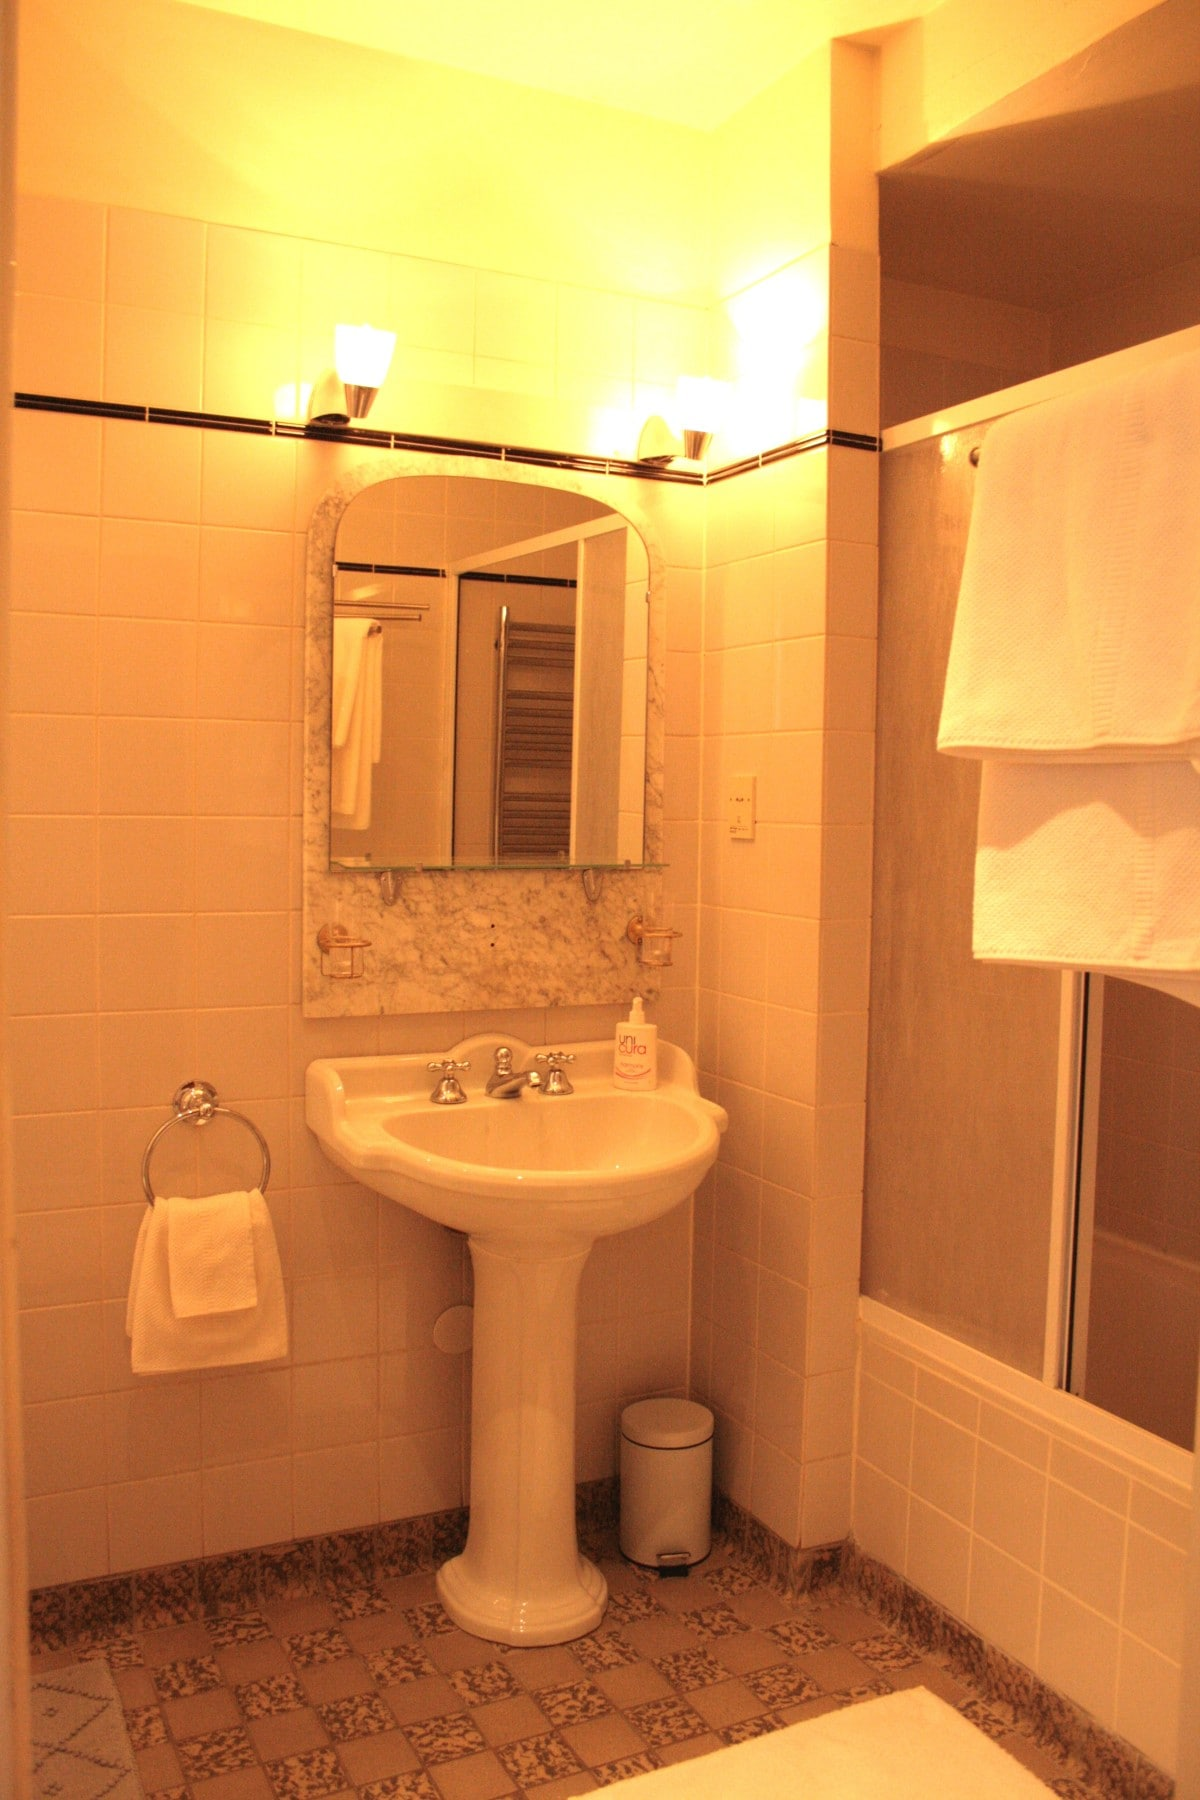 Large private bathroom with shower and bath, nice towels